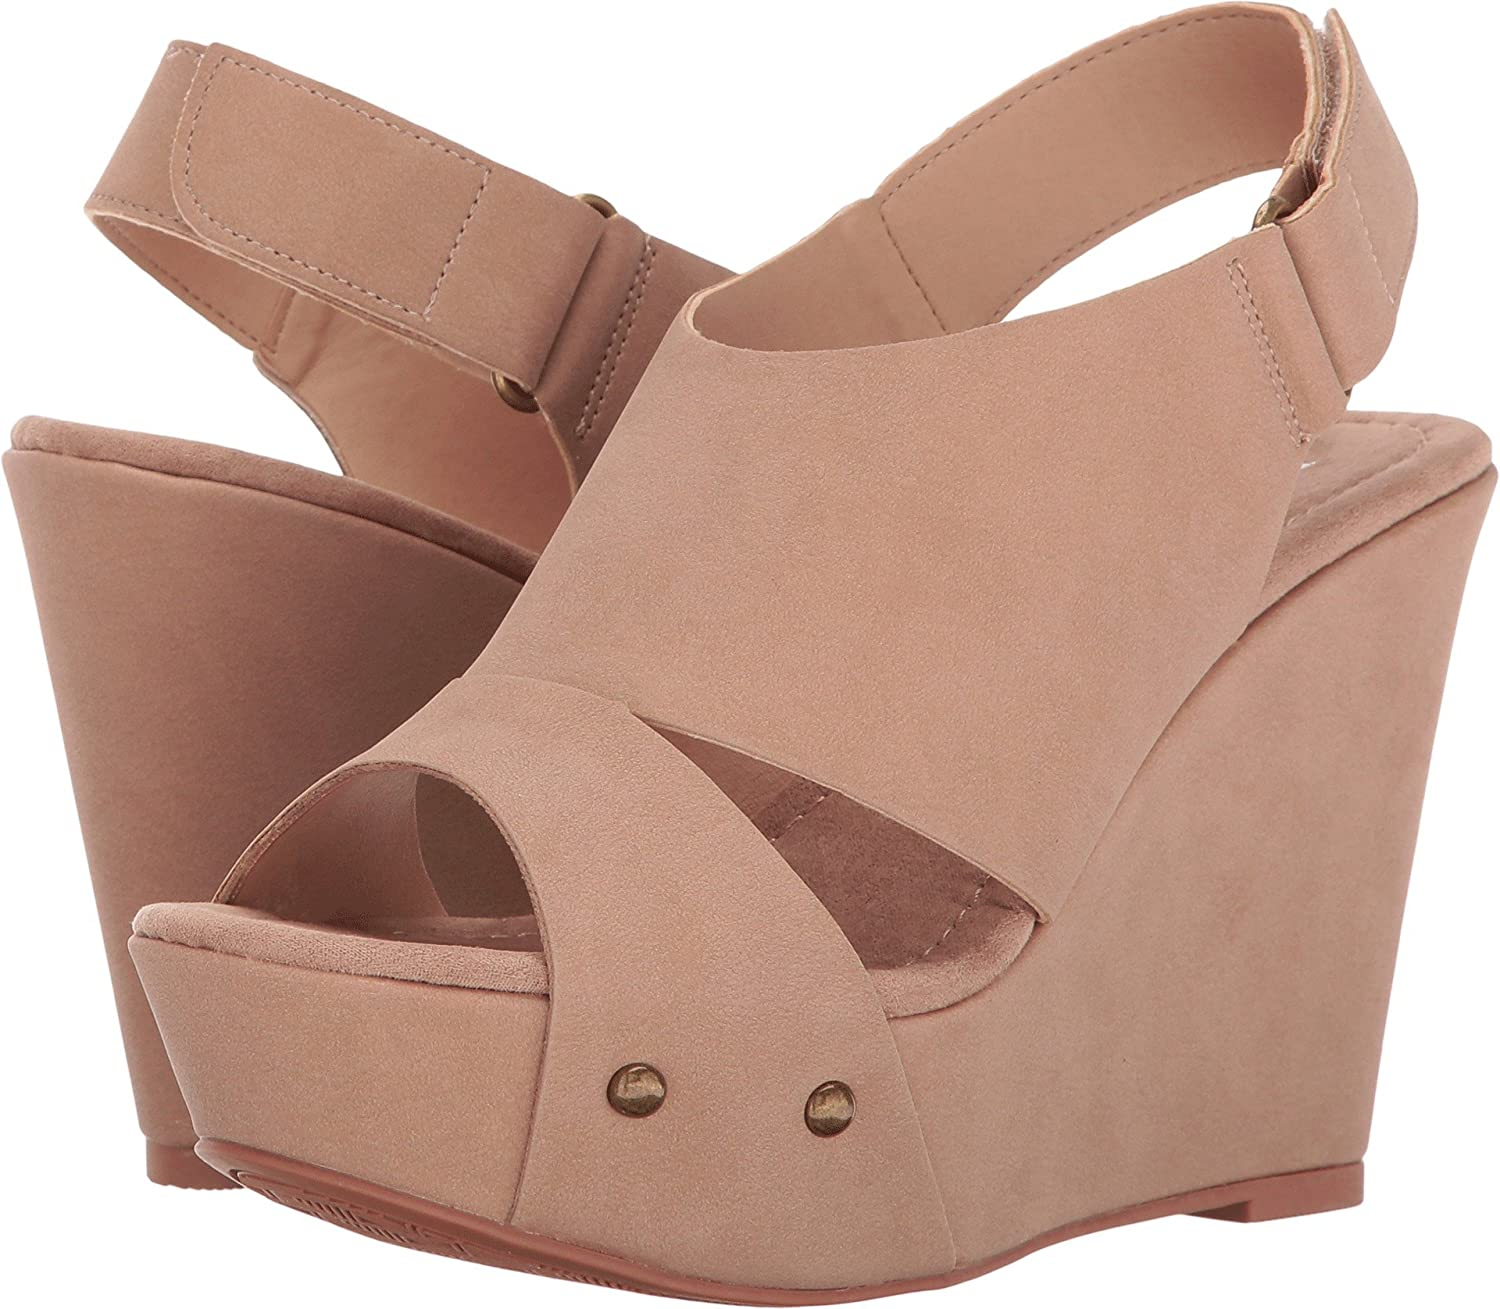 Dirty Laundry Women's DL Court Me Nude 9.5 B US